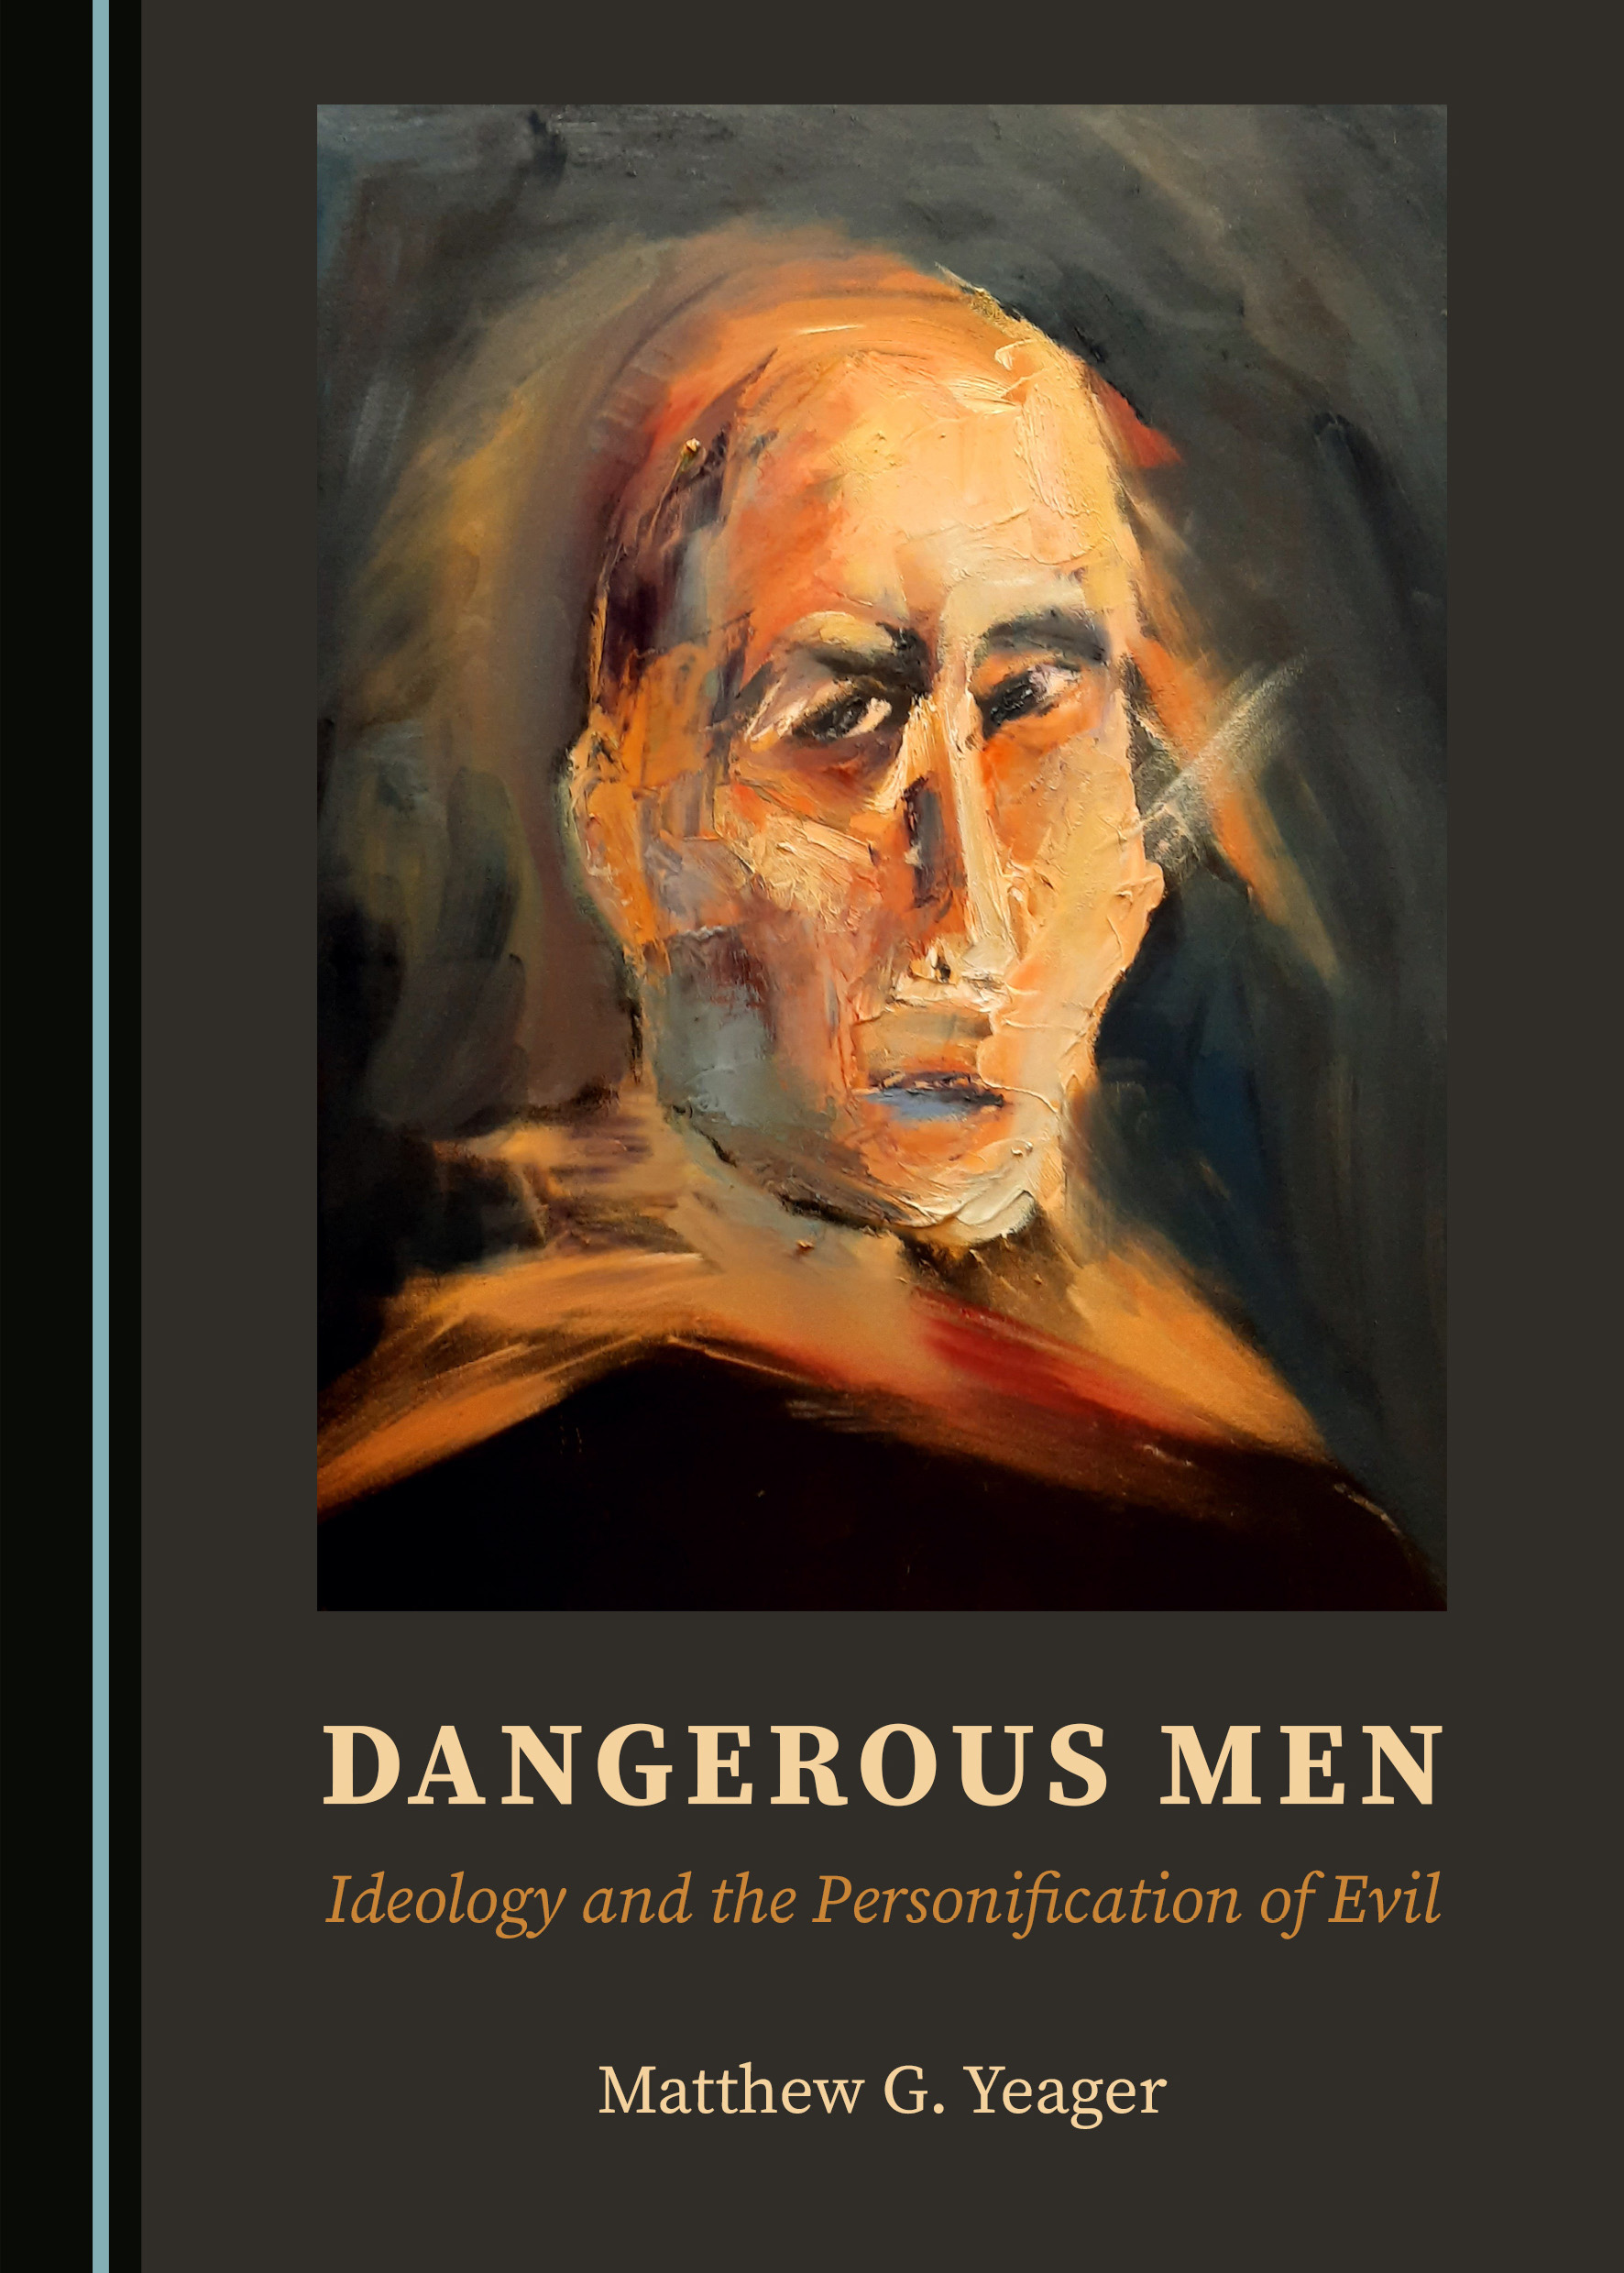 Dangerous Men: Ideology and the Personification of Evil